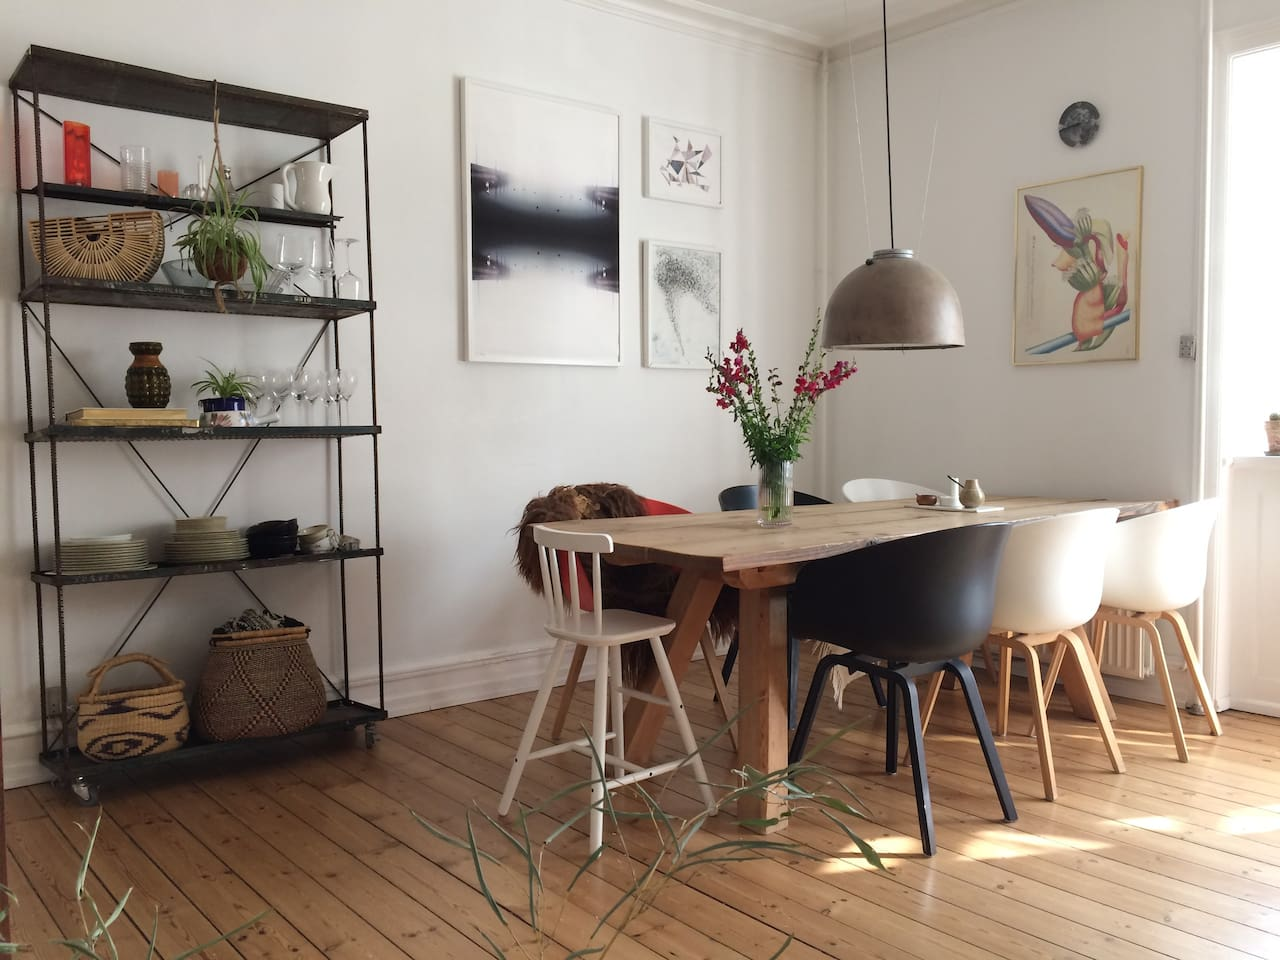 A handcrafted dining table with danish design HAY chairs and an original Copenhagen 'streetlight'